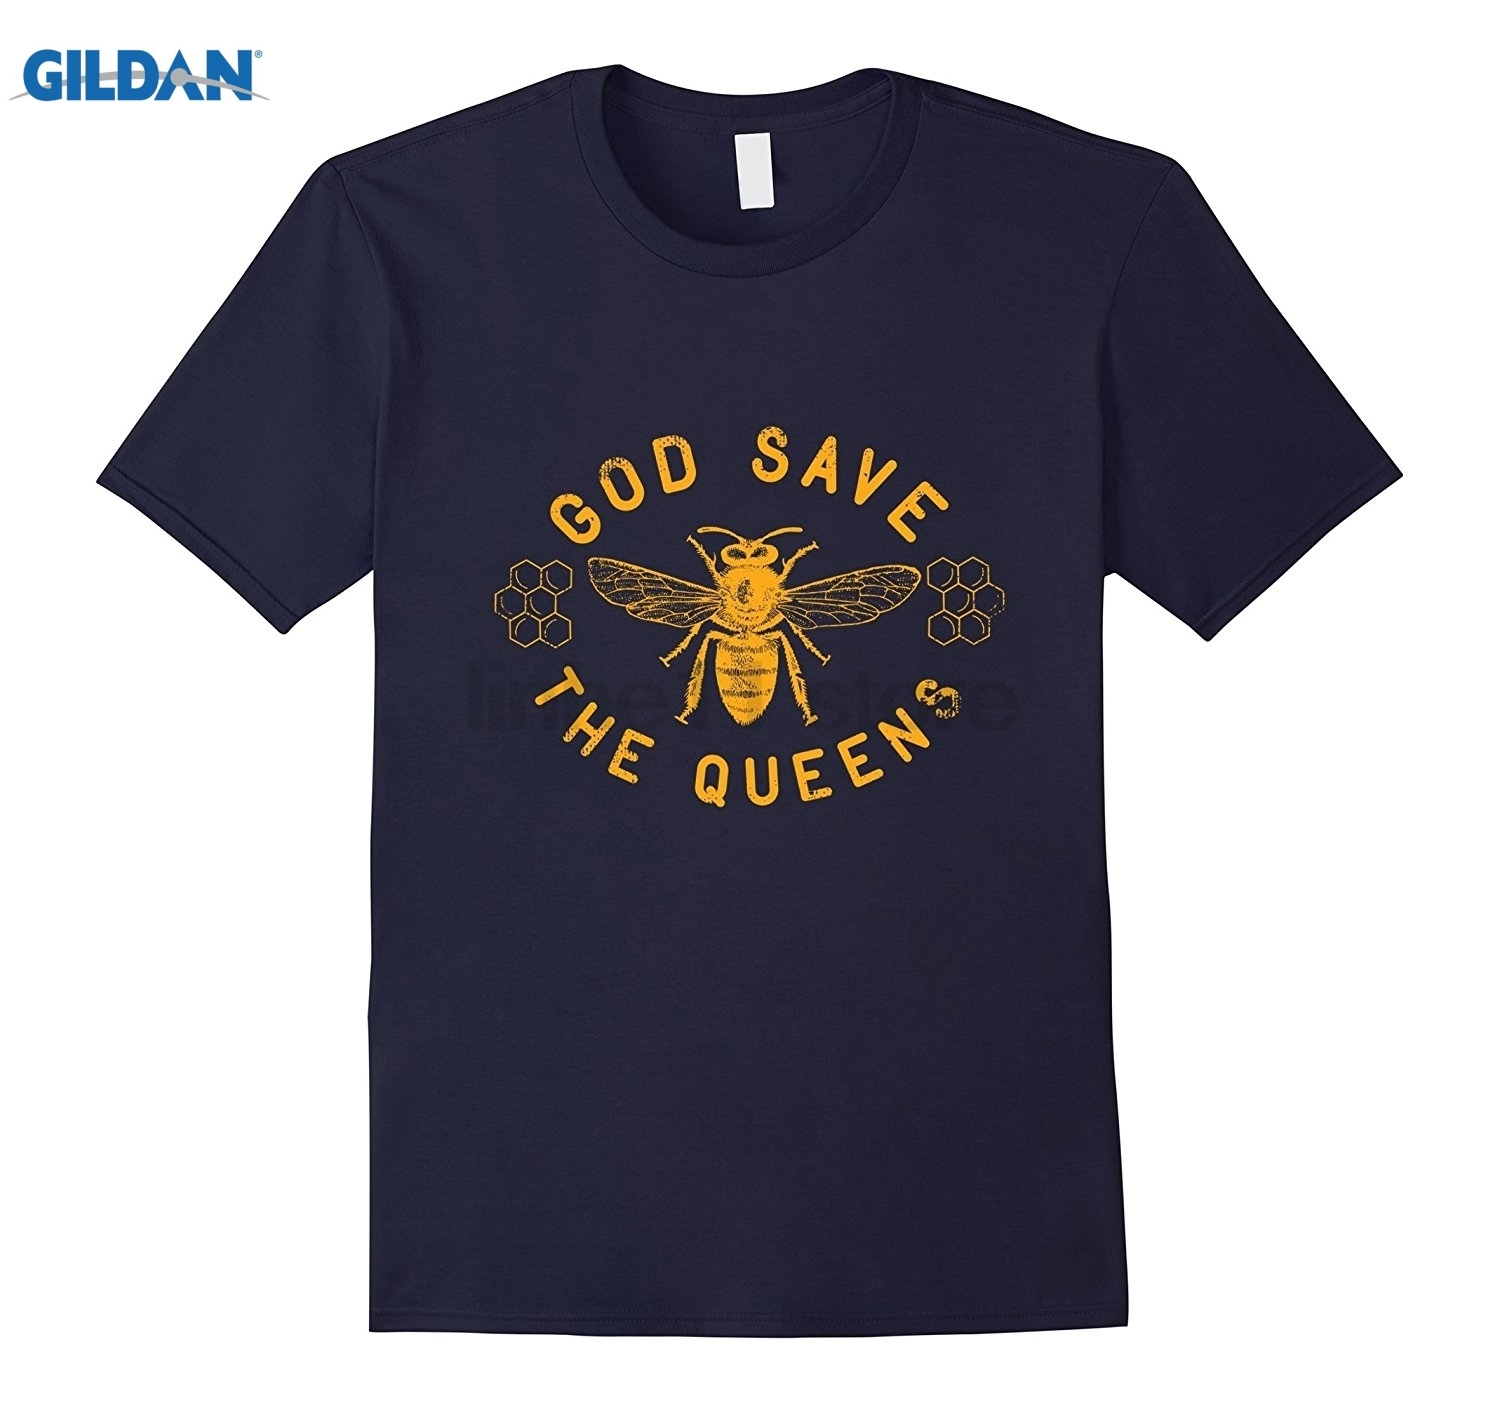 GILDAN Bee Lovers Tee Shirt for the Natural Organic Gardner Womens T-shirt